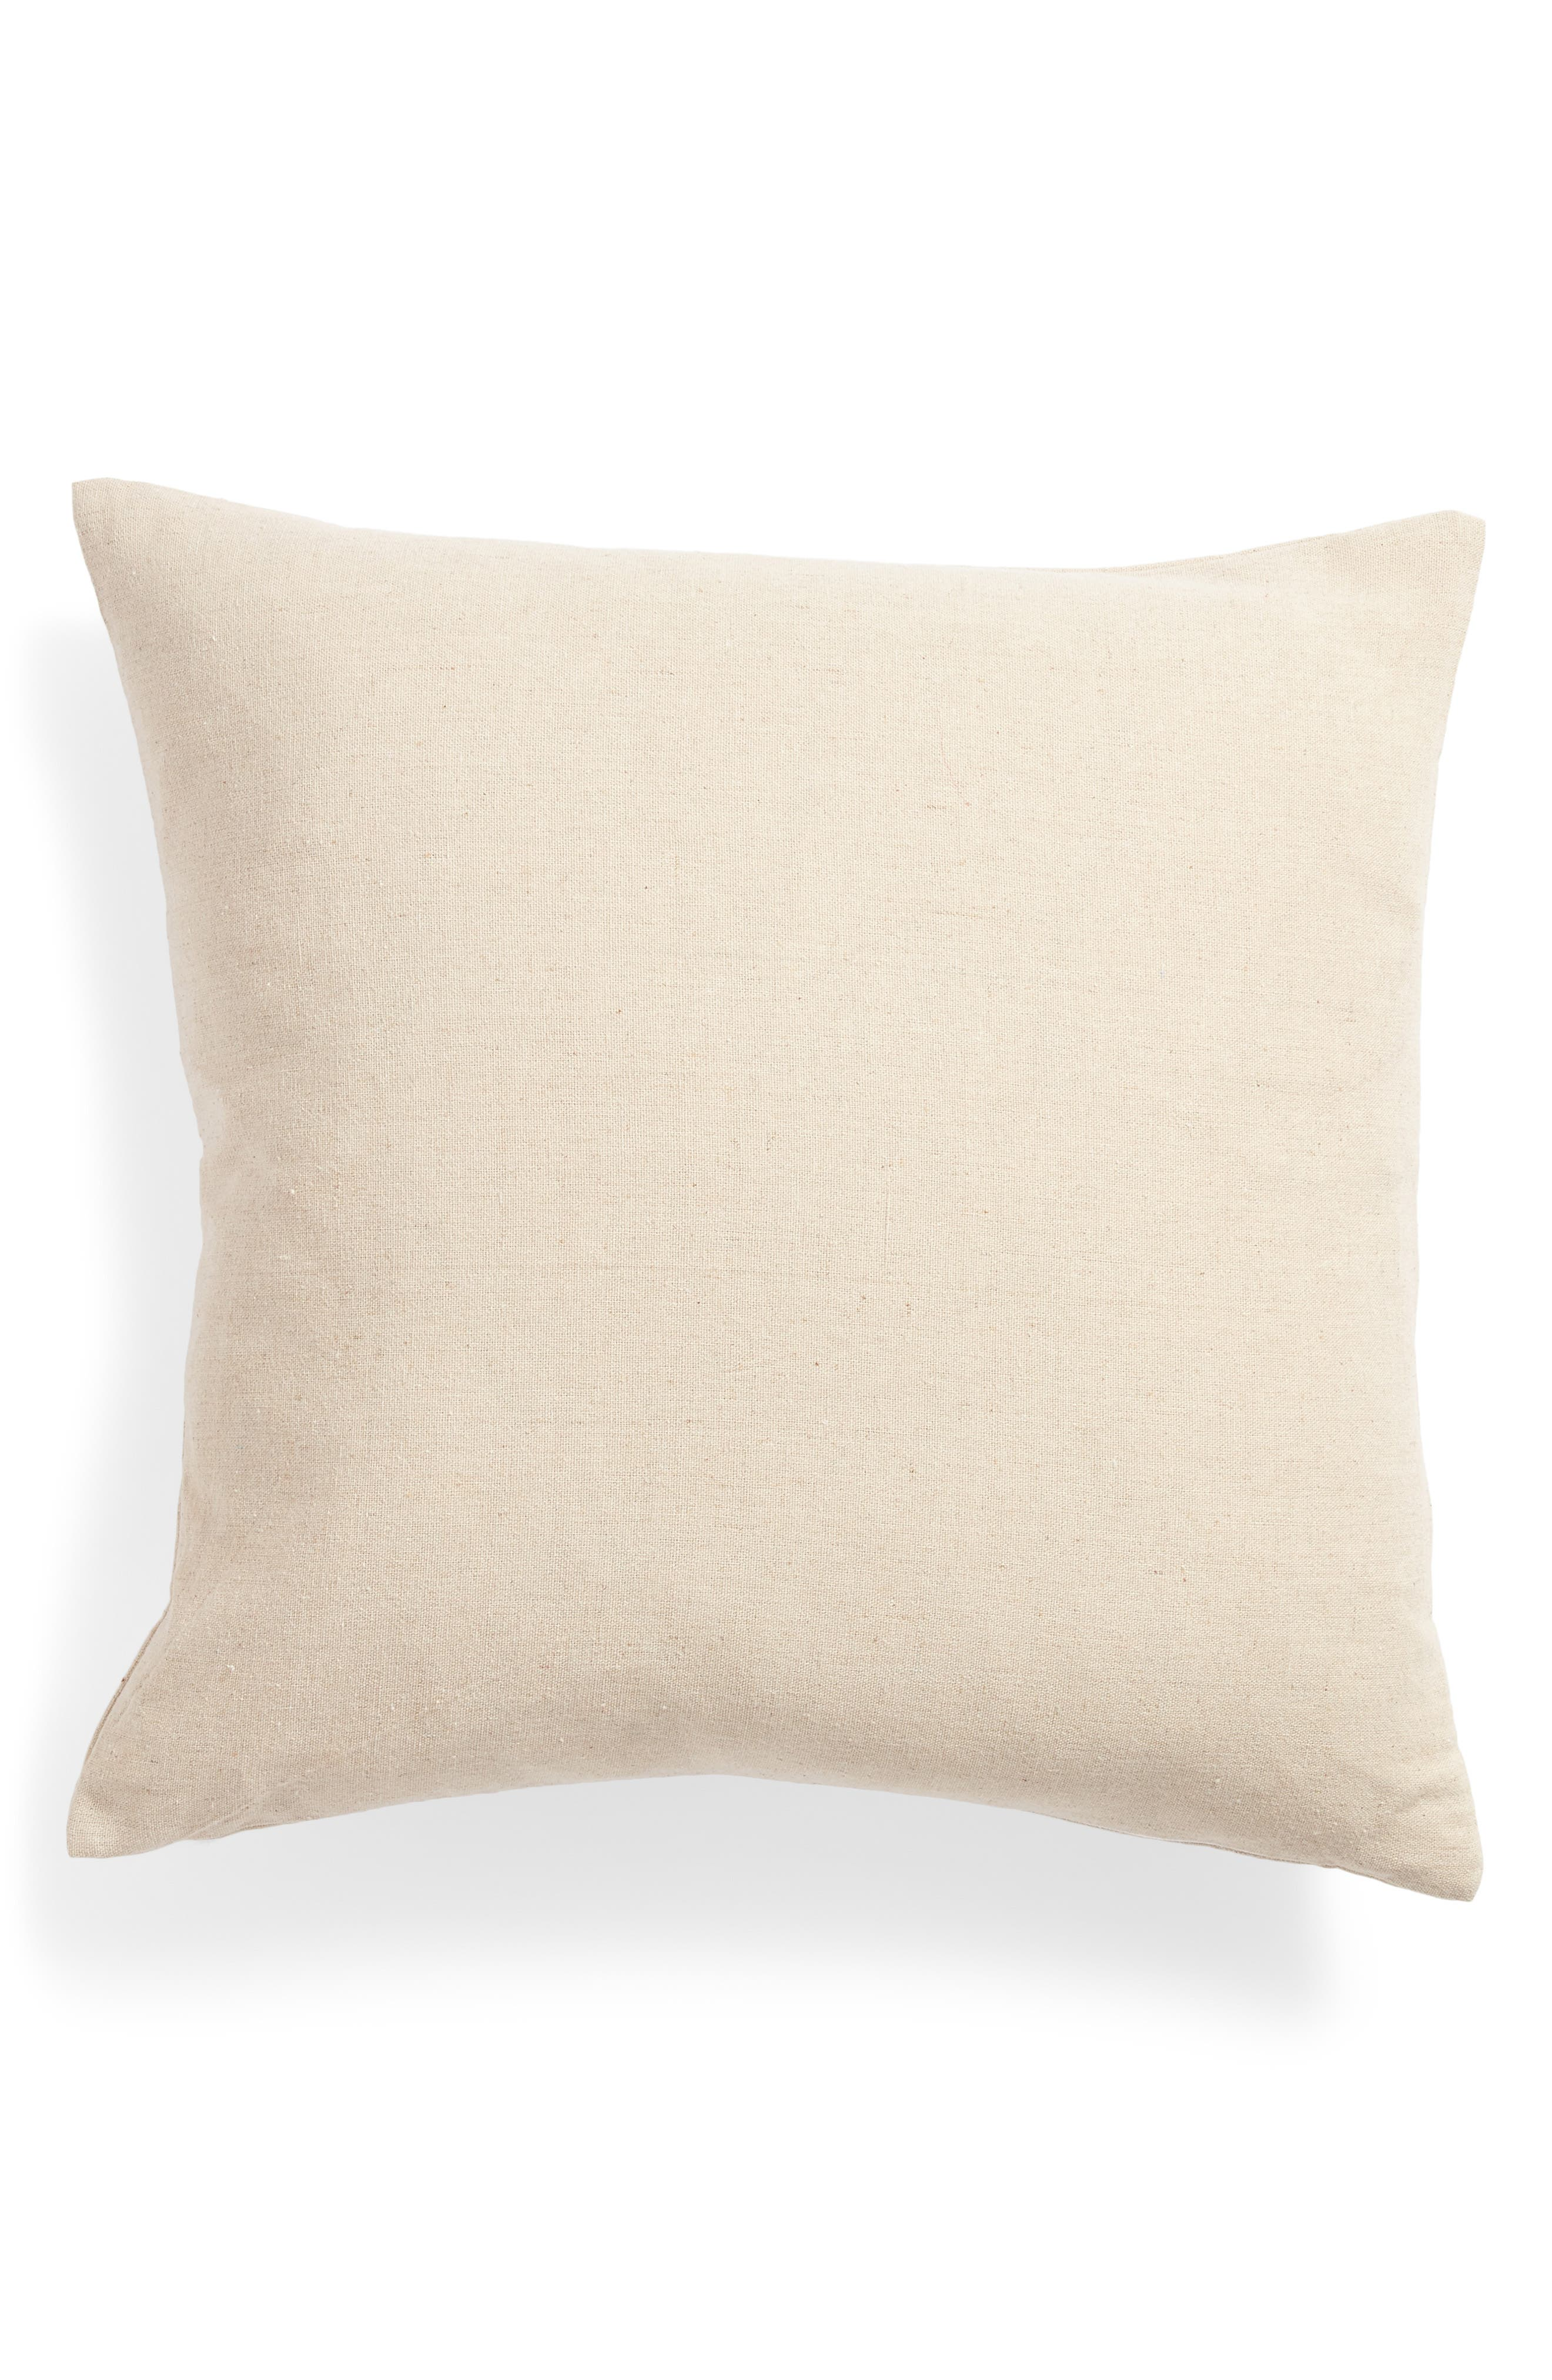 Oh Honey Accent Pillow,                             Alternate thumbnail 2, color,                             020